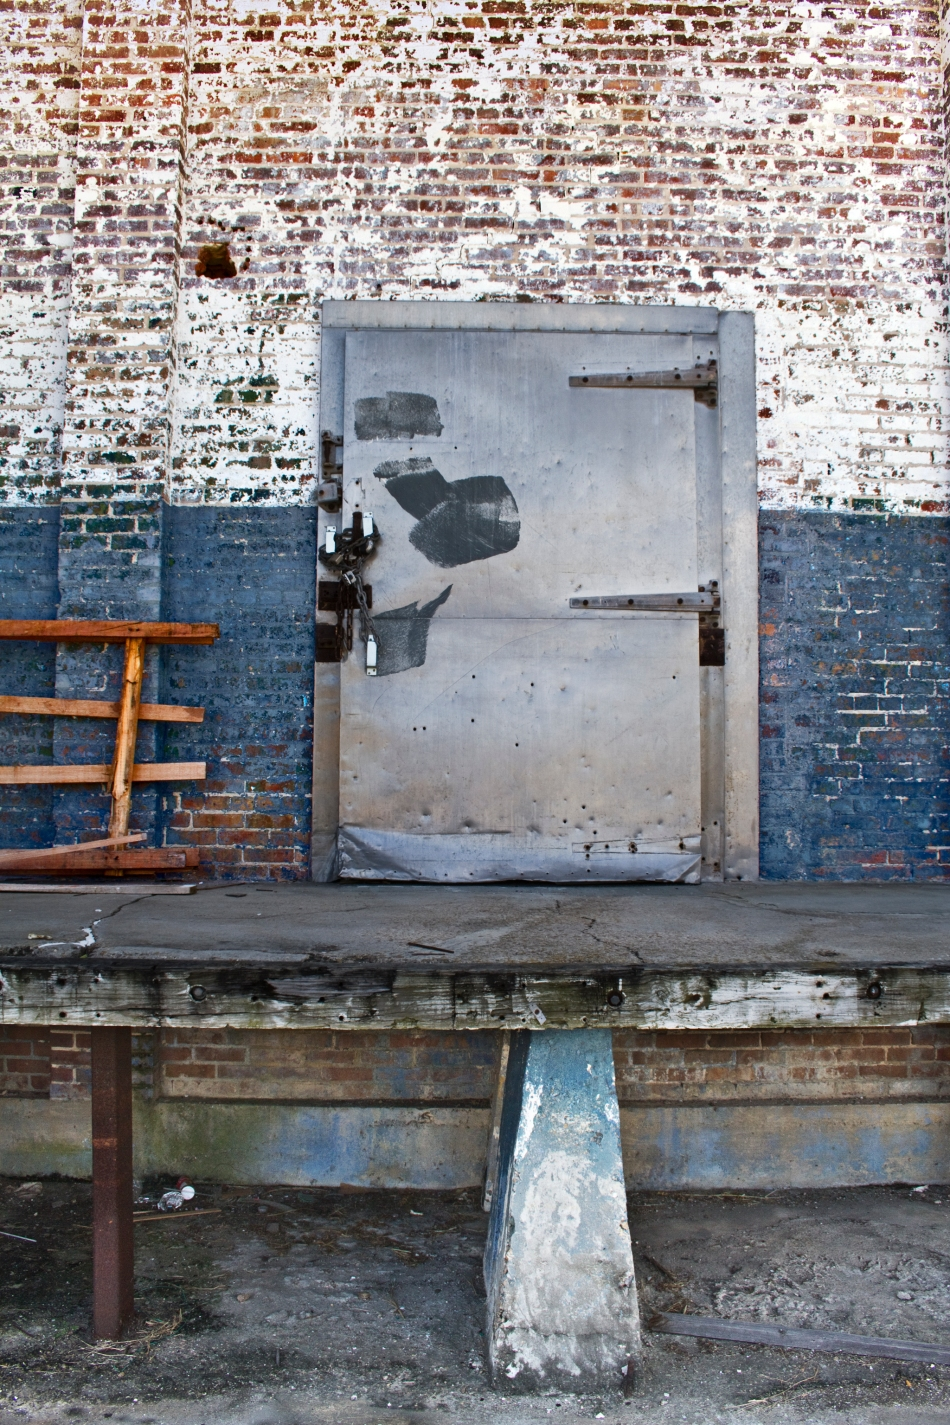 An image of am industrial metal door in a red brick wall partially painted blue